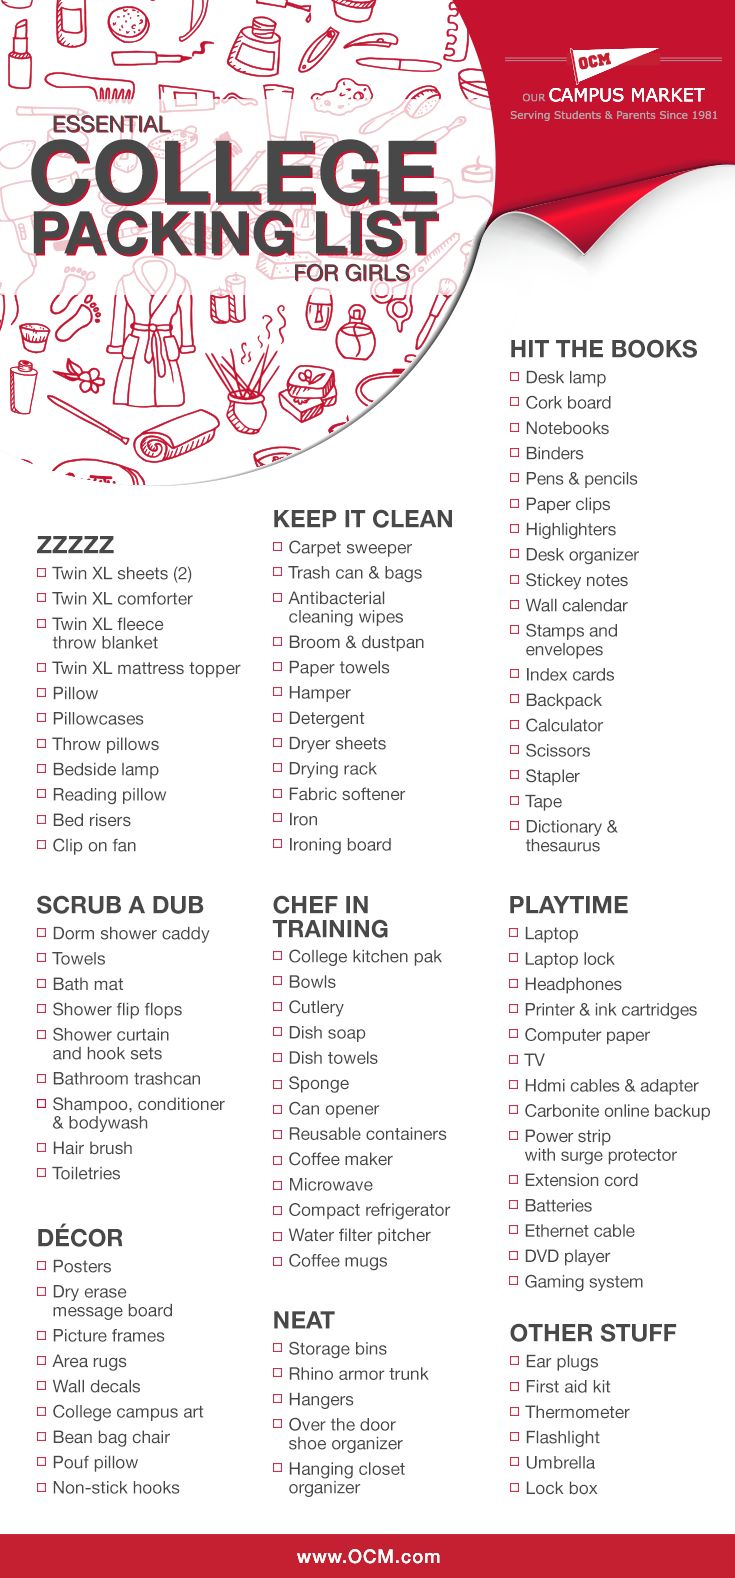 Move In Checklist For Girls